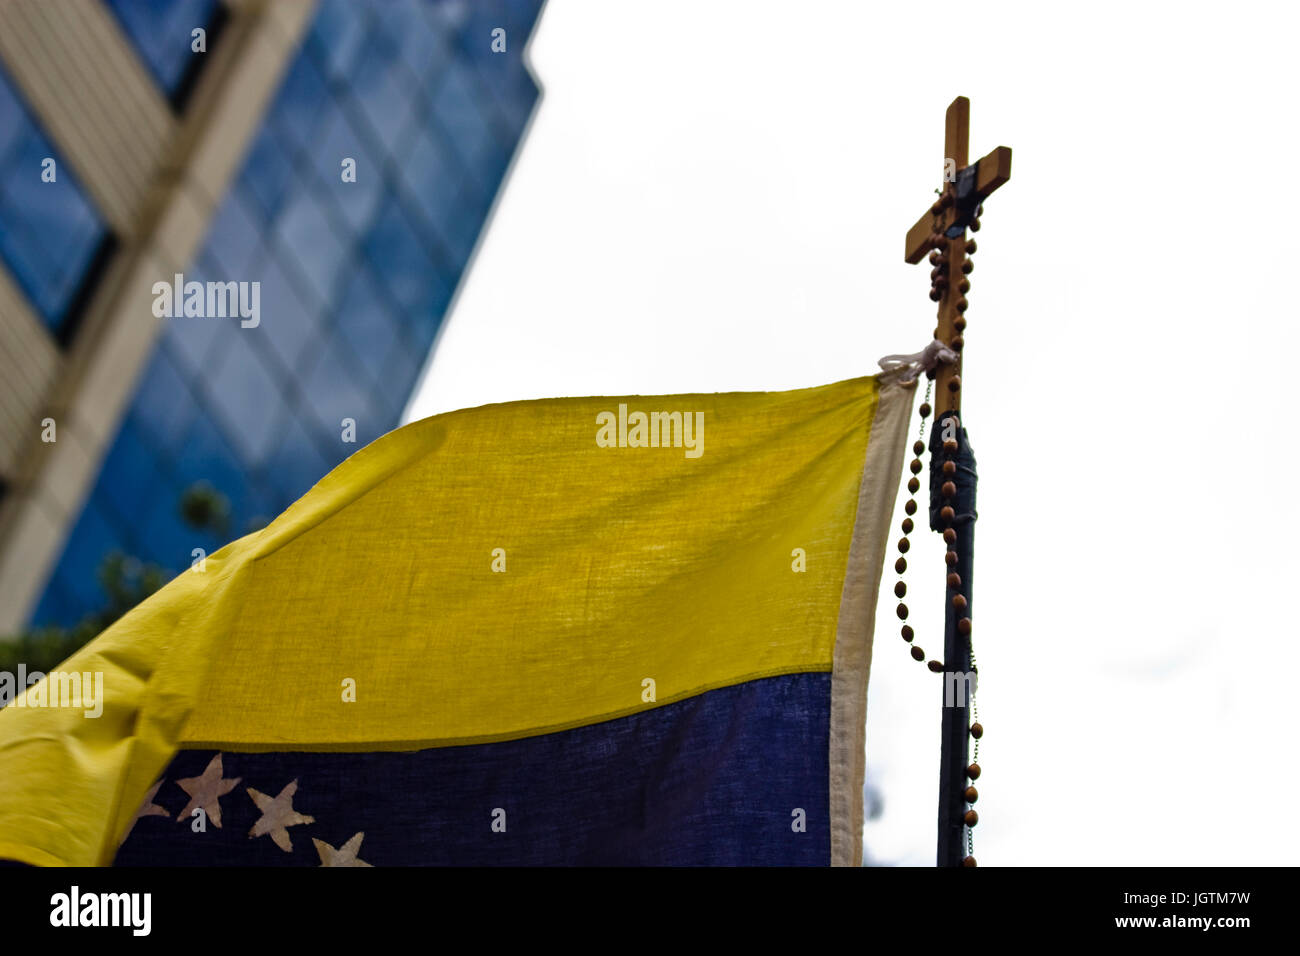 Oppositors demonstrators to the government of Nicolás Maduro met in Chacaíto, at the east of Caracas, - Stock Image